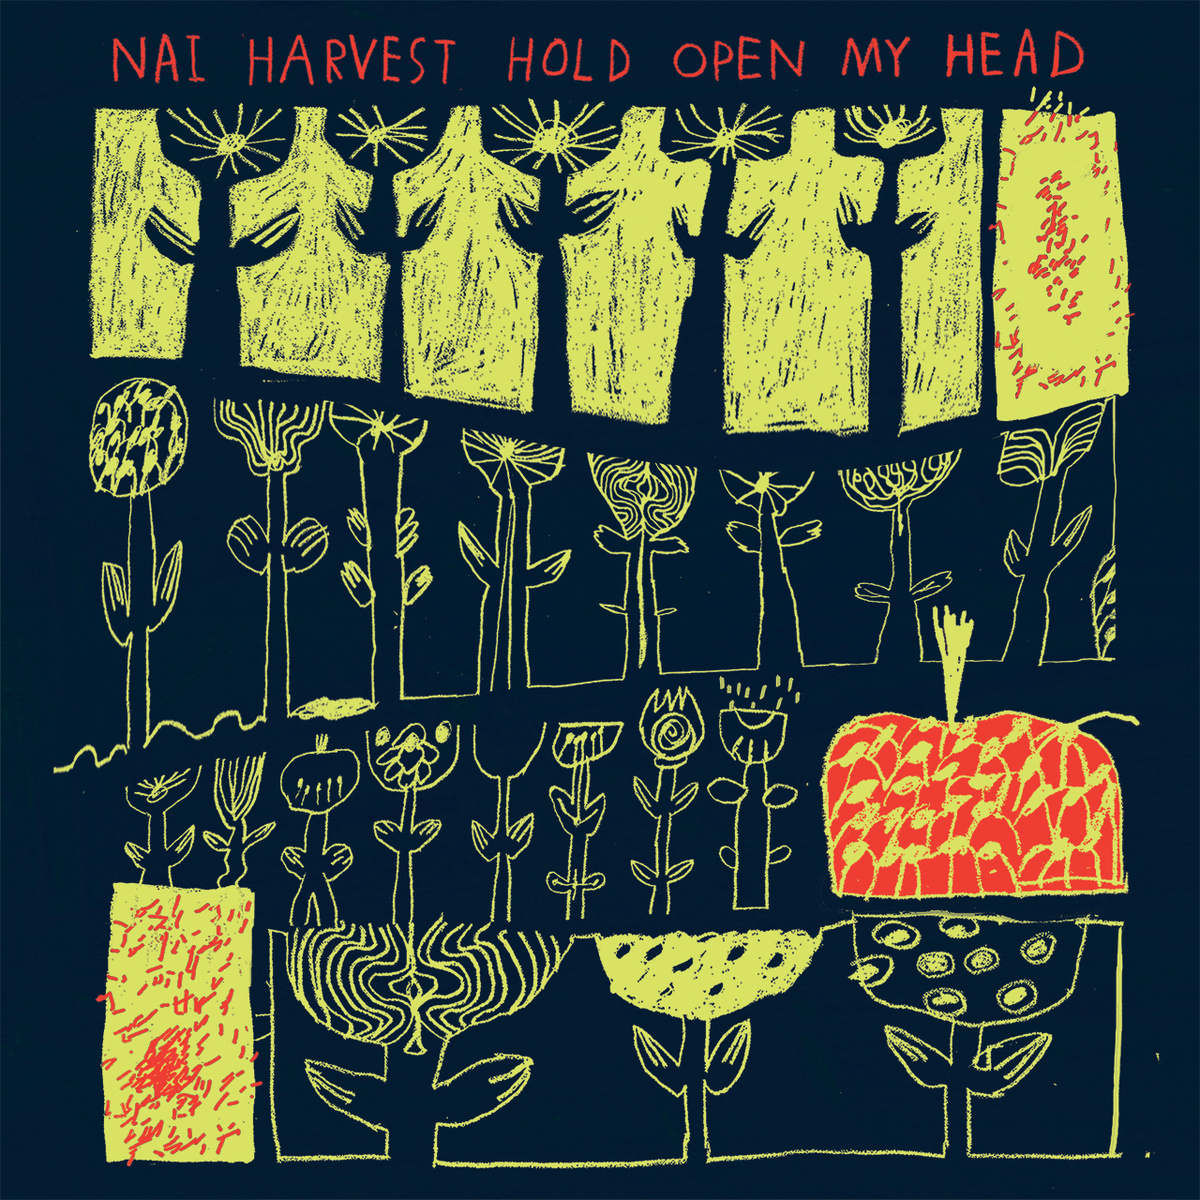 Nai Harvest - 'Hold Open My Head'